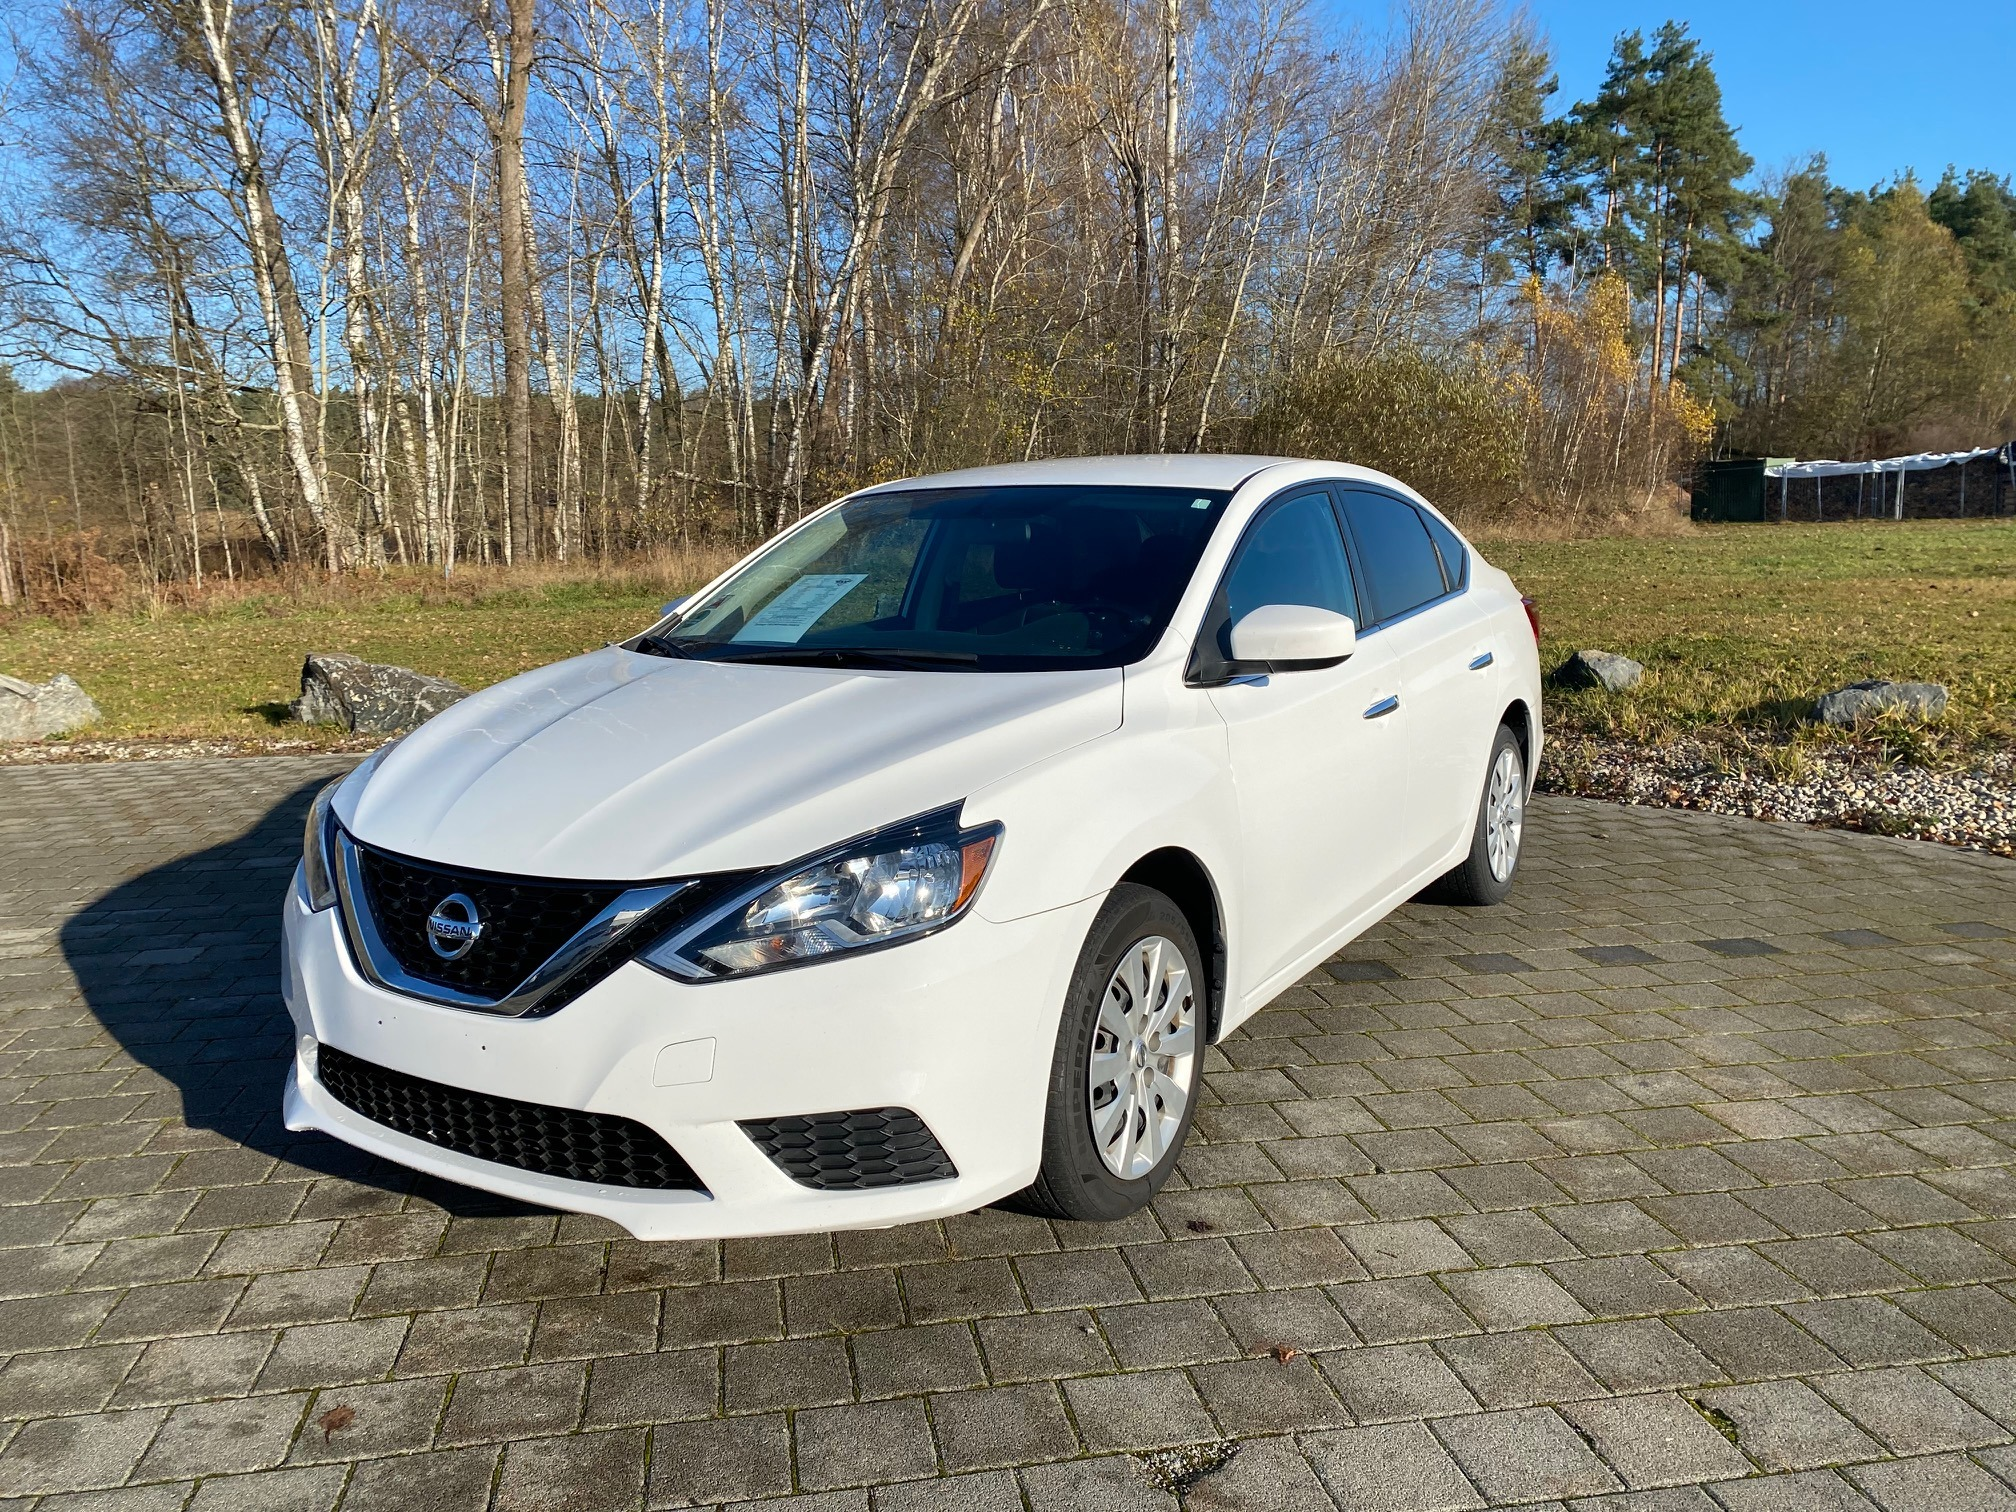 *New Arrival* </br>2017 Nissan Sentra S </br>as low as </br>$89 per paycheck